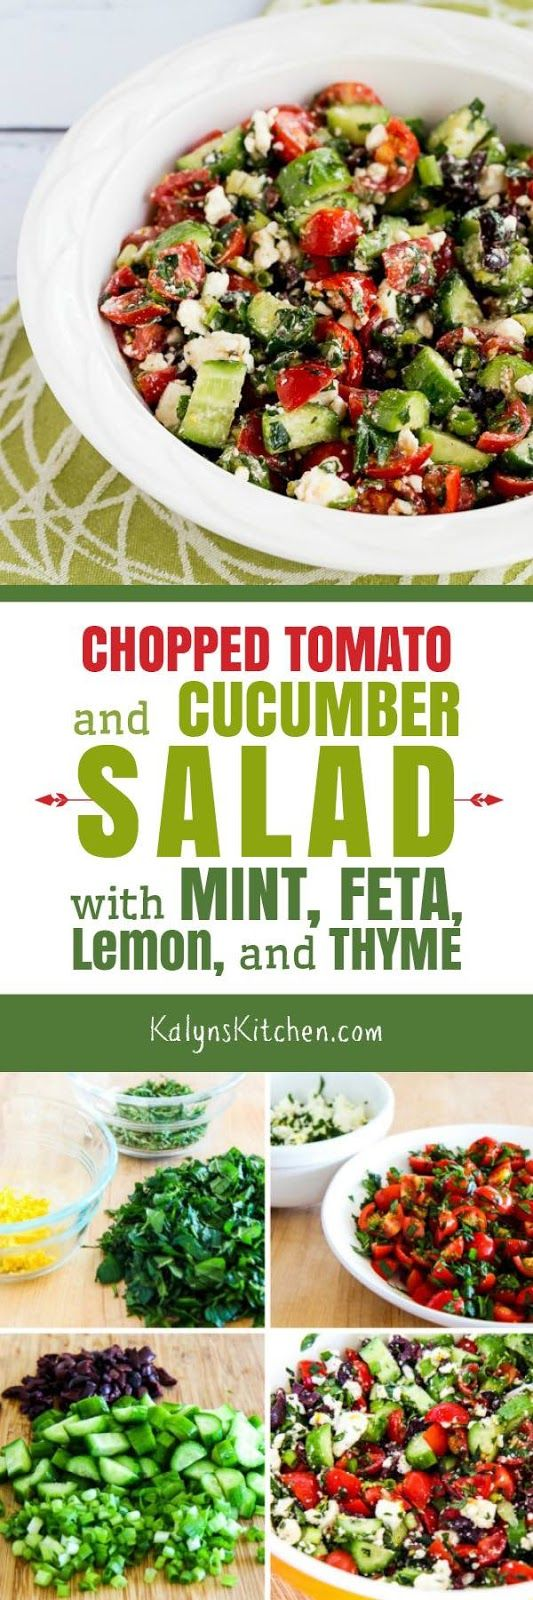 There's an interesting preparation method for this Chopped Tomato and Cucumber Salad with Mint, Feta, Lemon, and Thyme that infuses the salad with wonderful flavor. This amazing salad is not to be missed, and it's low-carb, gluten-free, meatless, and South Beach Diet friendly! [found on KalynsKitchen.com]